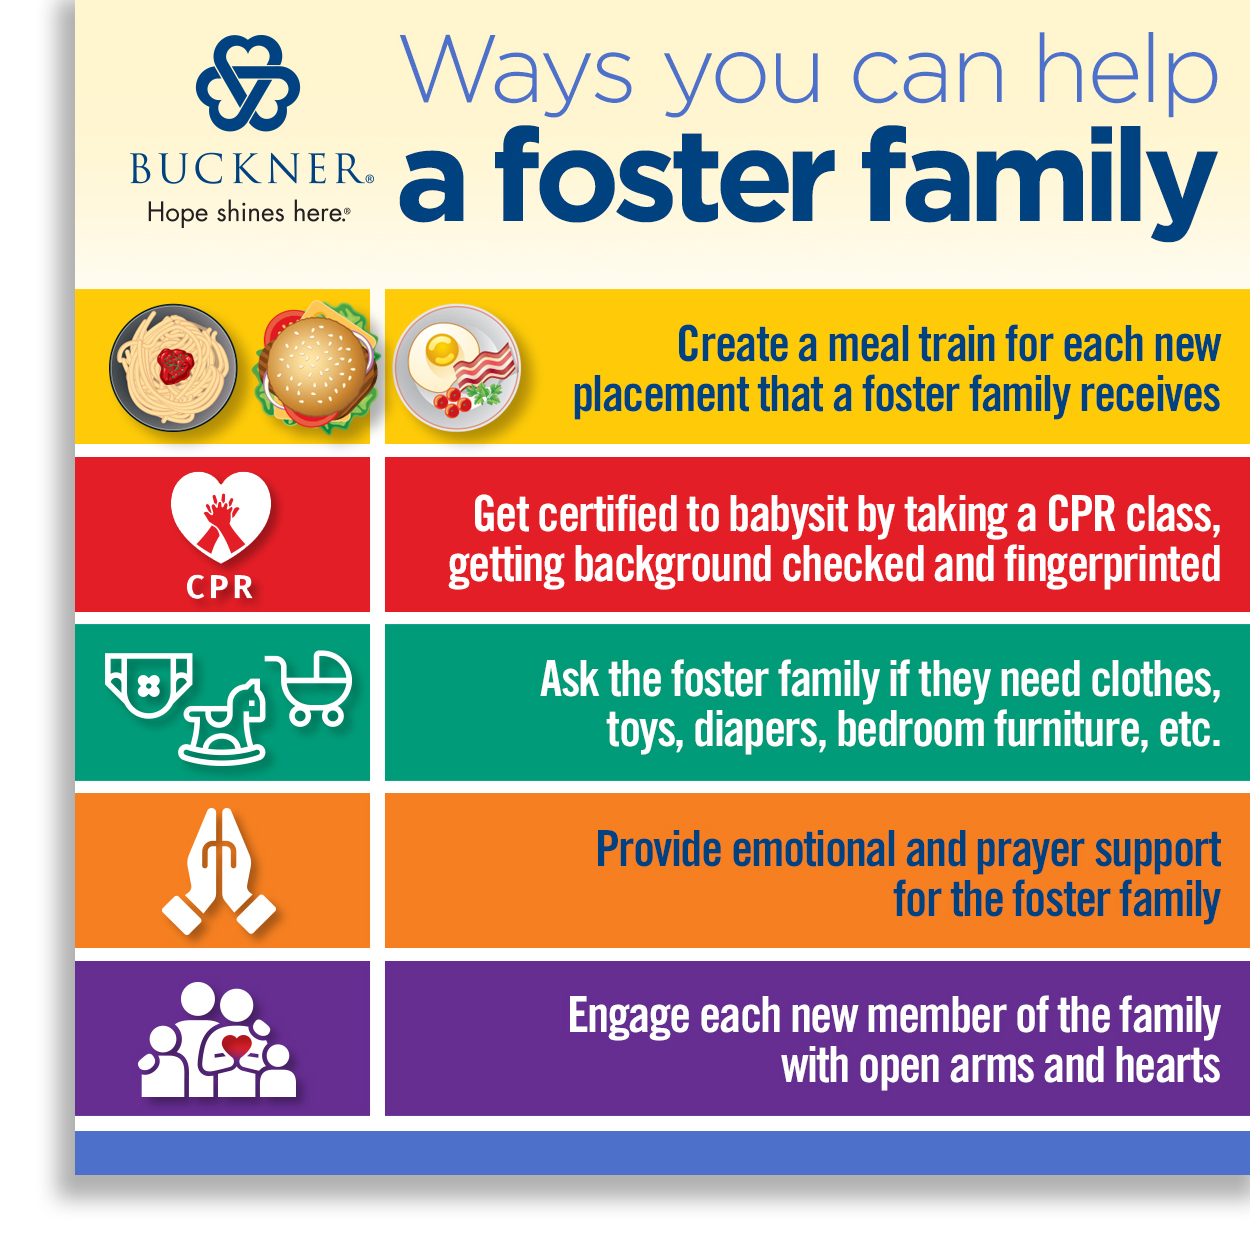 help-foster-families-by-providing-care-and-support.jpg